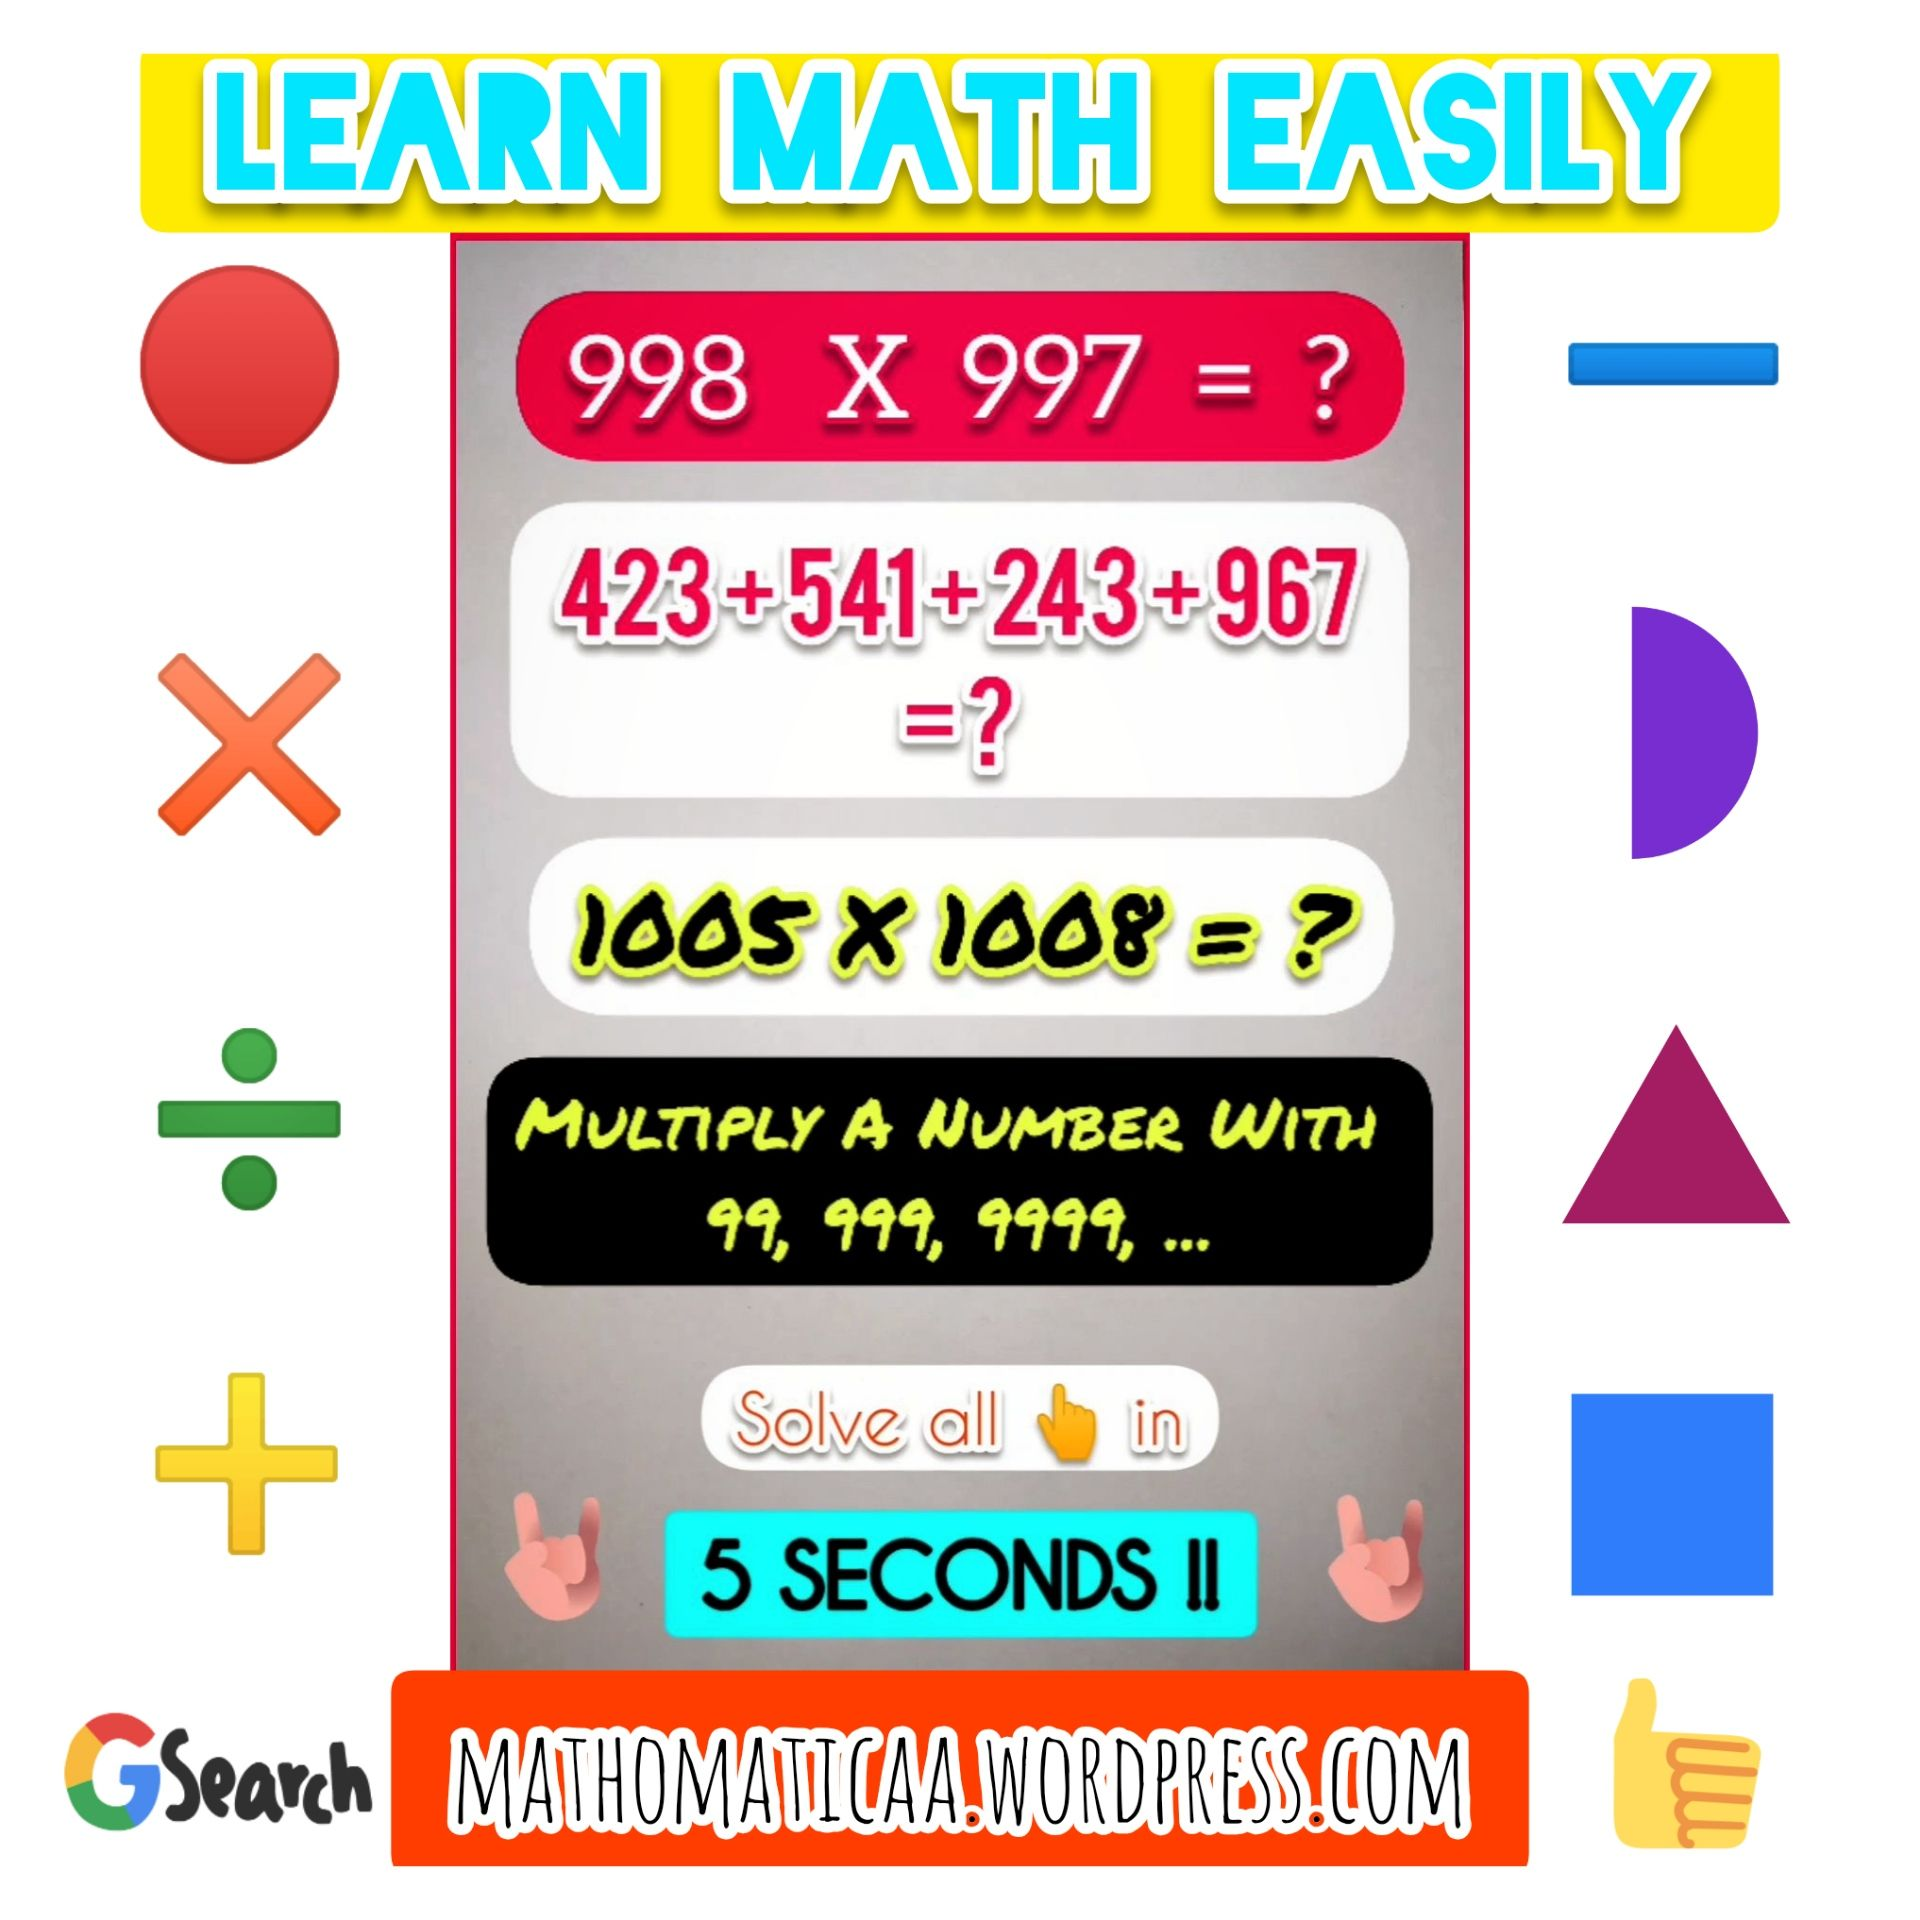 Learn Math Easily Solve In Seconds Learning Math Math Math Tricks Easy learn addition math tricks